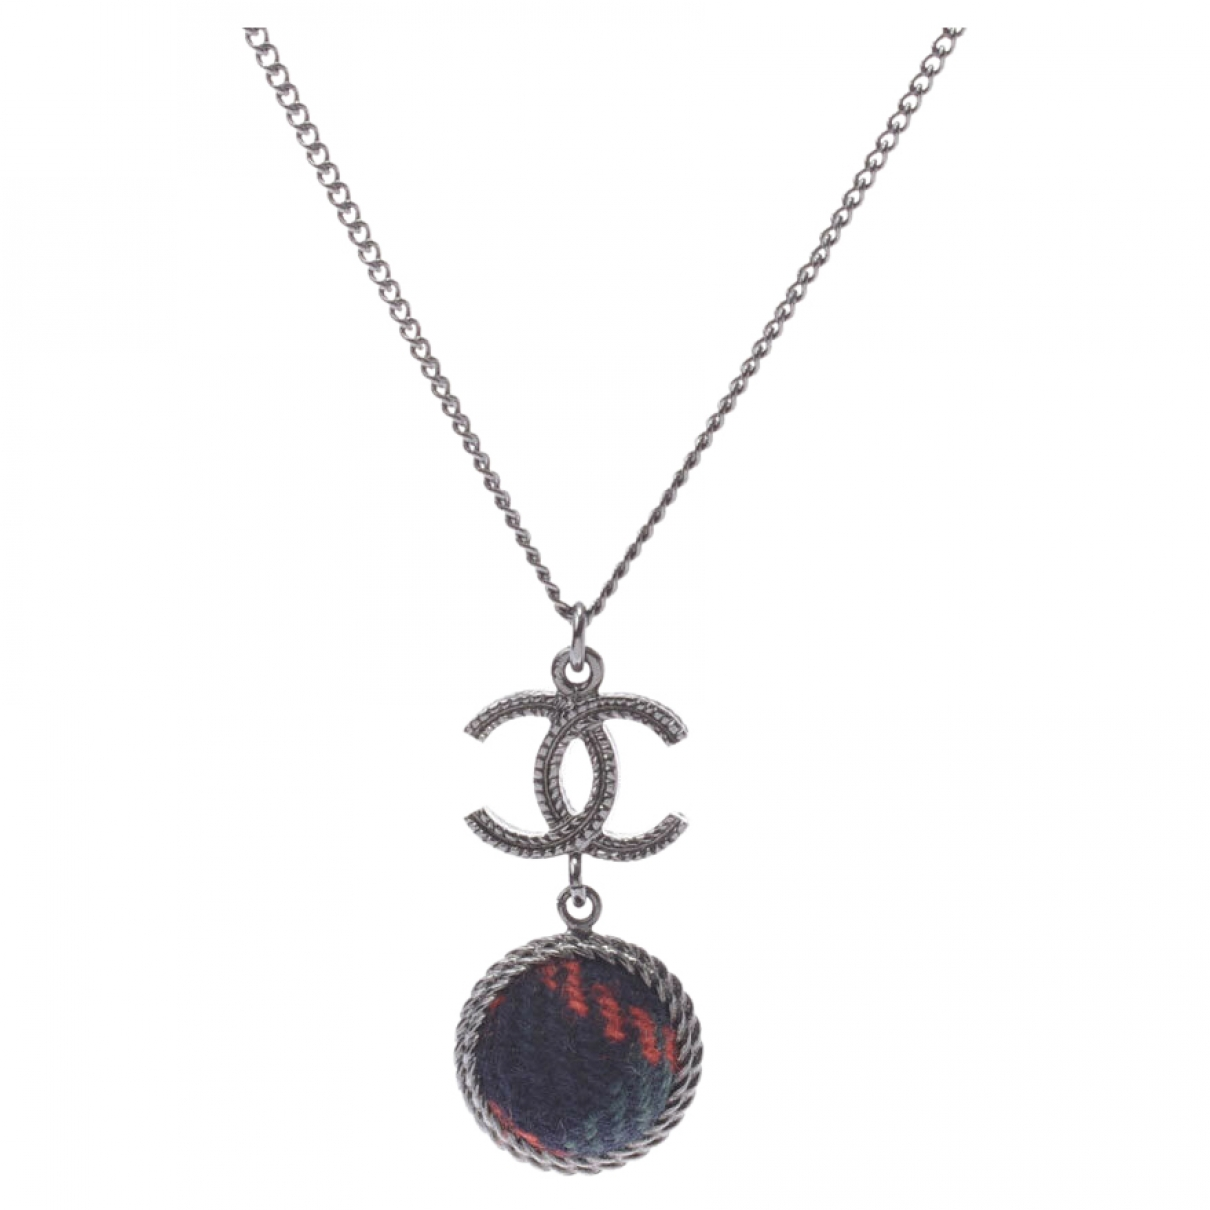 Chanel \N Silver Metal necklace for Women \N